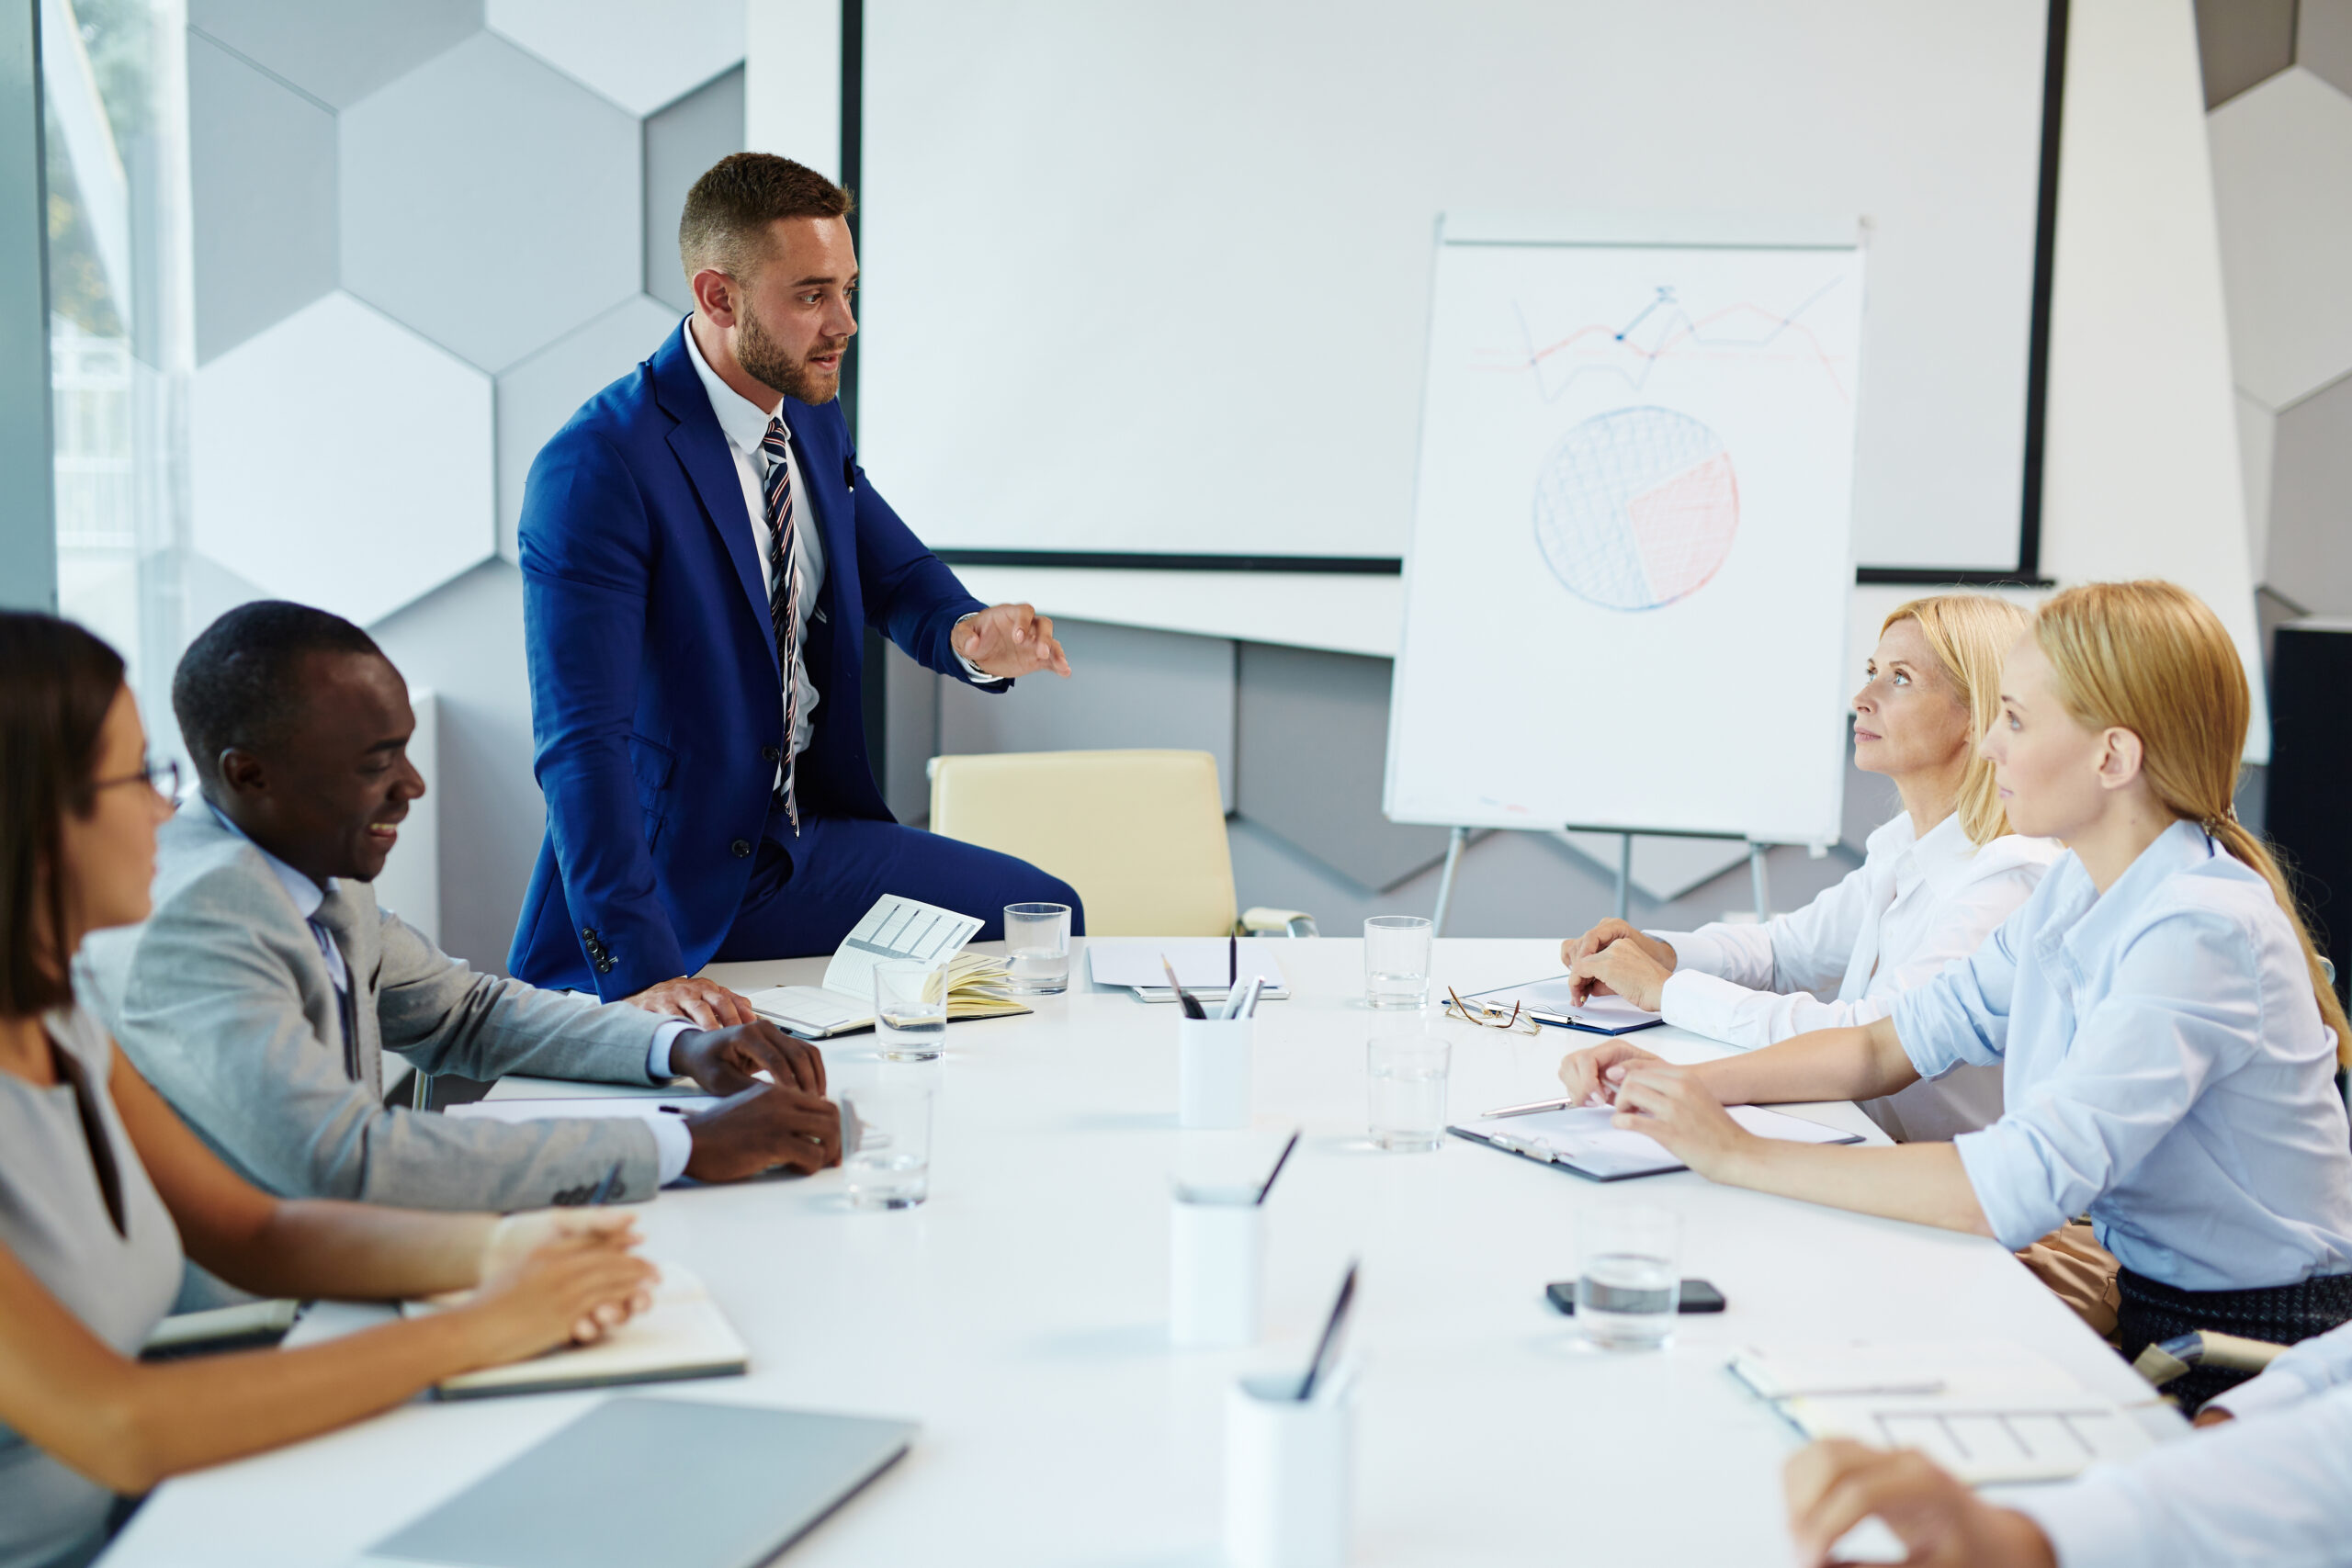 Elegant businessman explaining viewpoint to co-workers at meeting